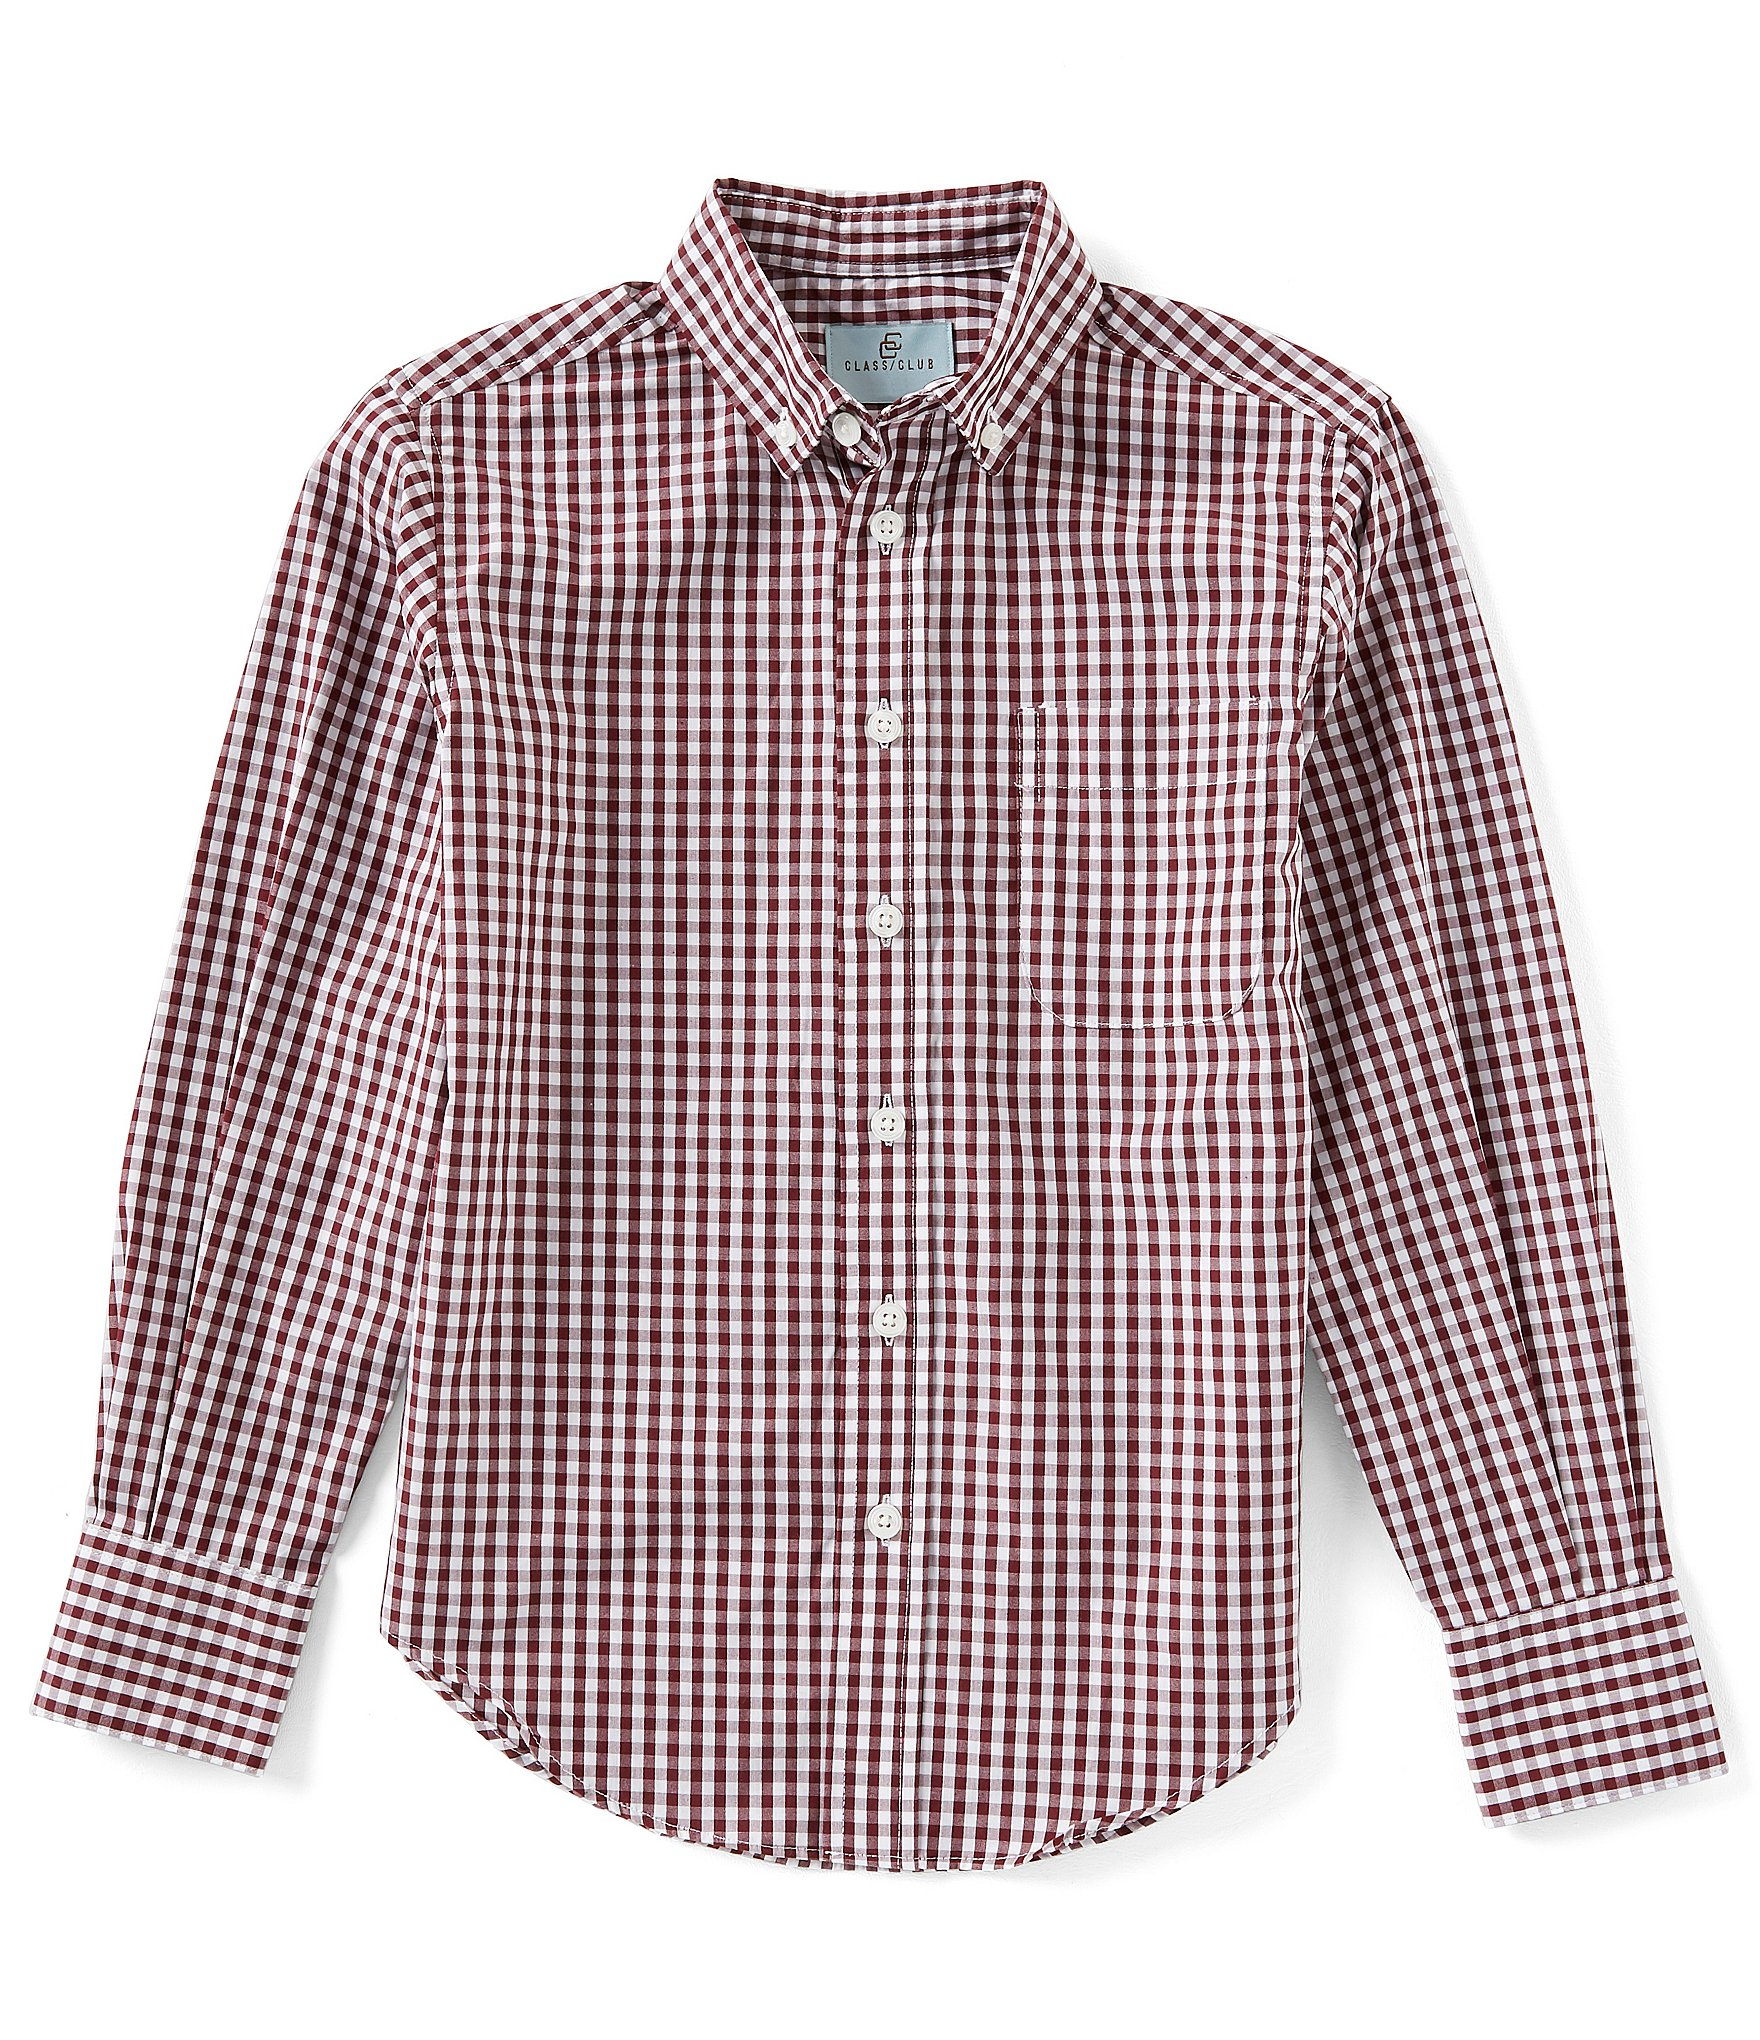 Sizing Chart With Common Left Chest Heart And Pocket: Class Club Little Boys 2T-7 Long-Sleeve Gingham Button